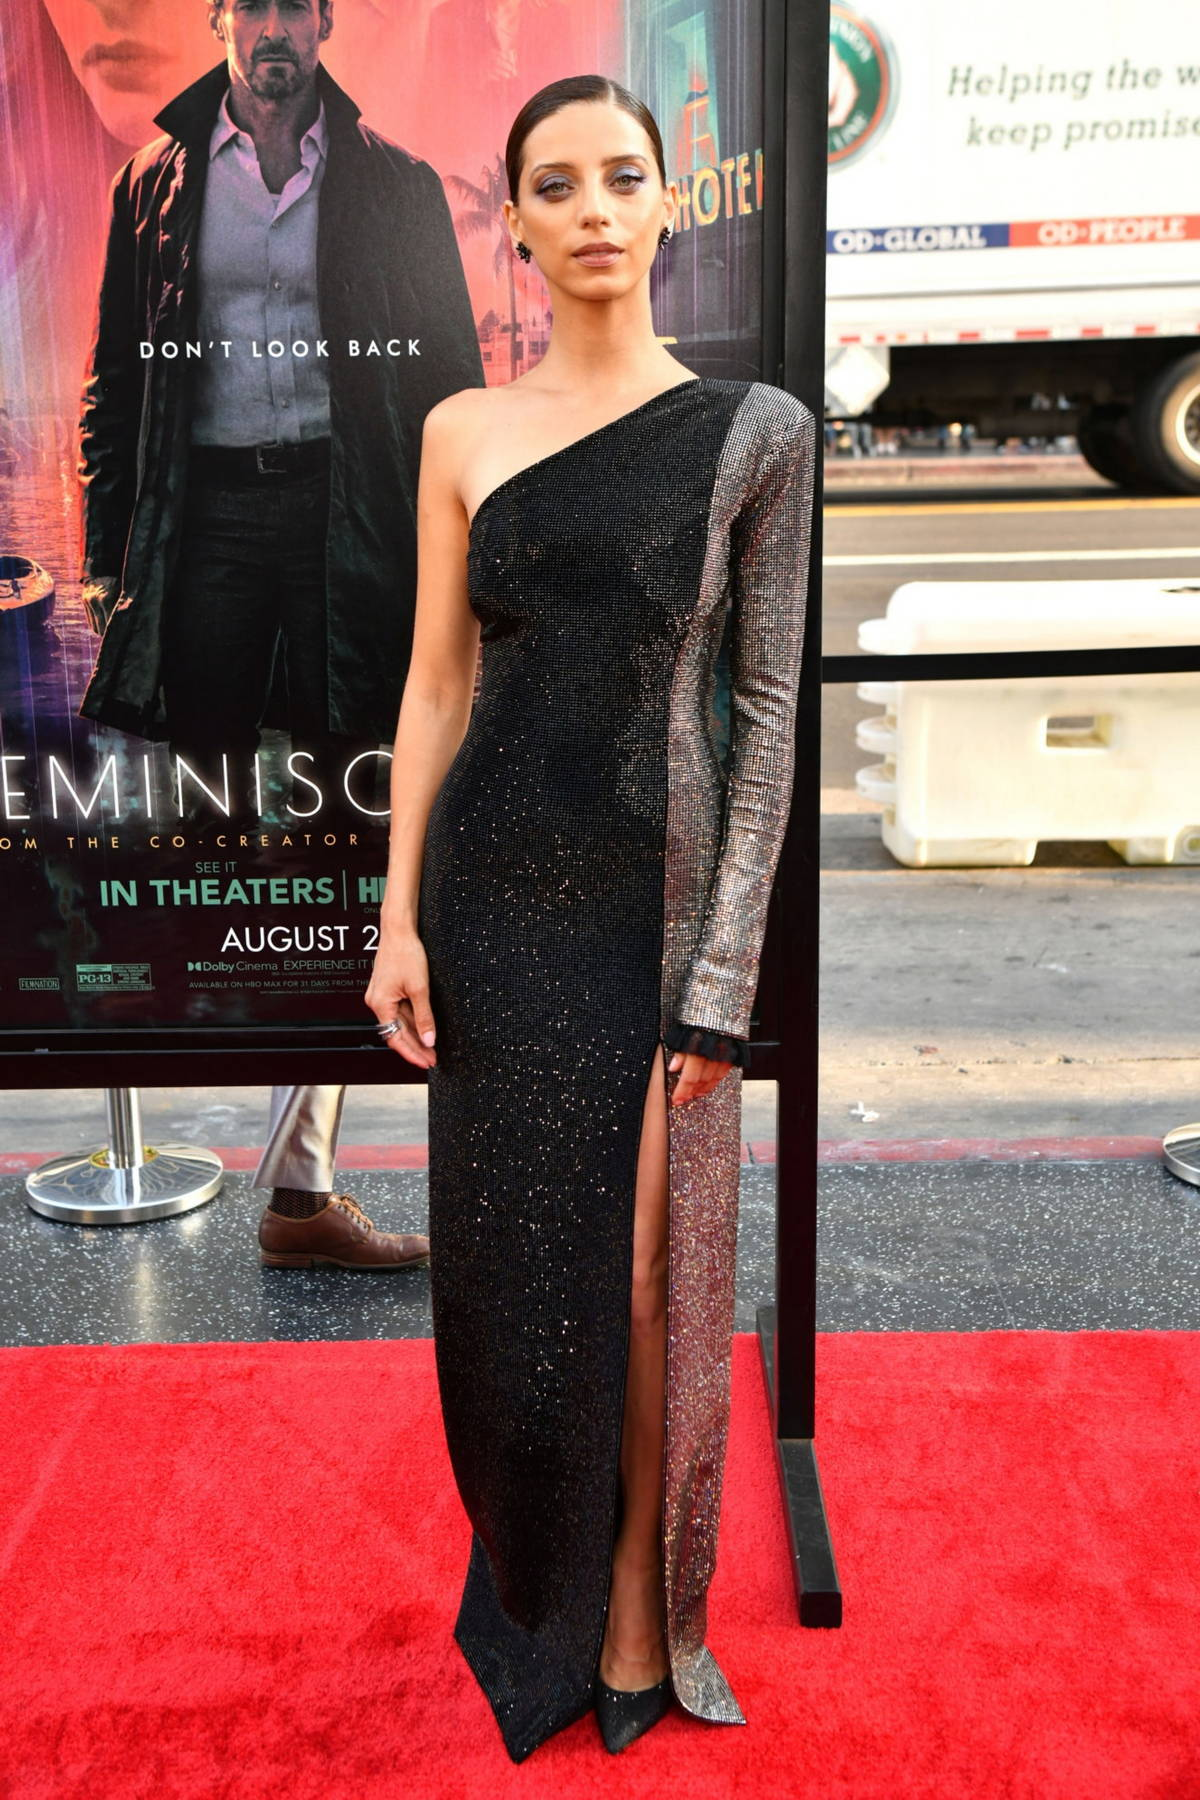 Angela Sarafyan attends the Premiere of 'Reminiscence' at TCL Chinese Theatre in Hollywood, California